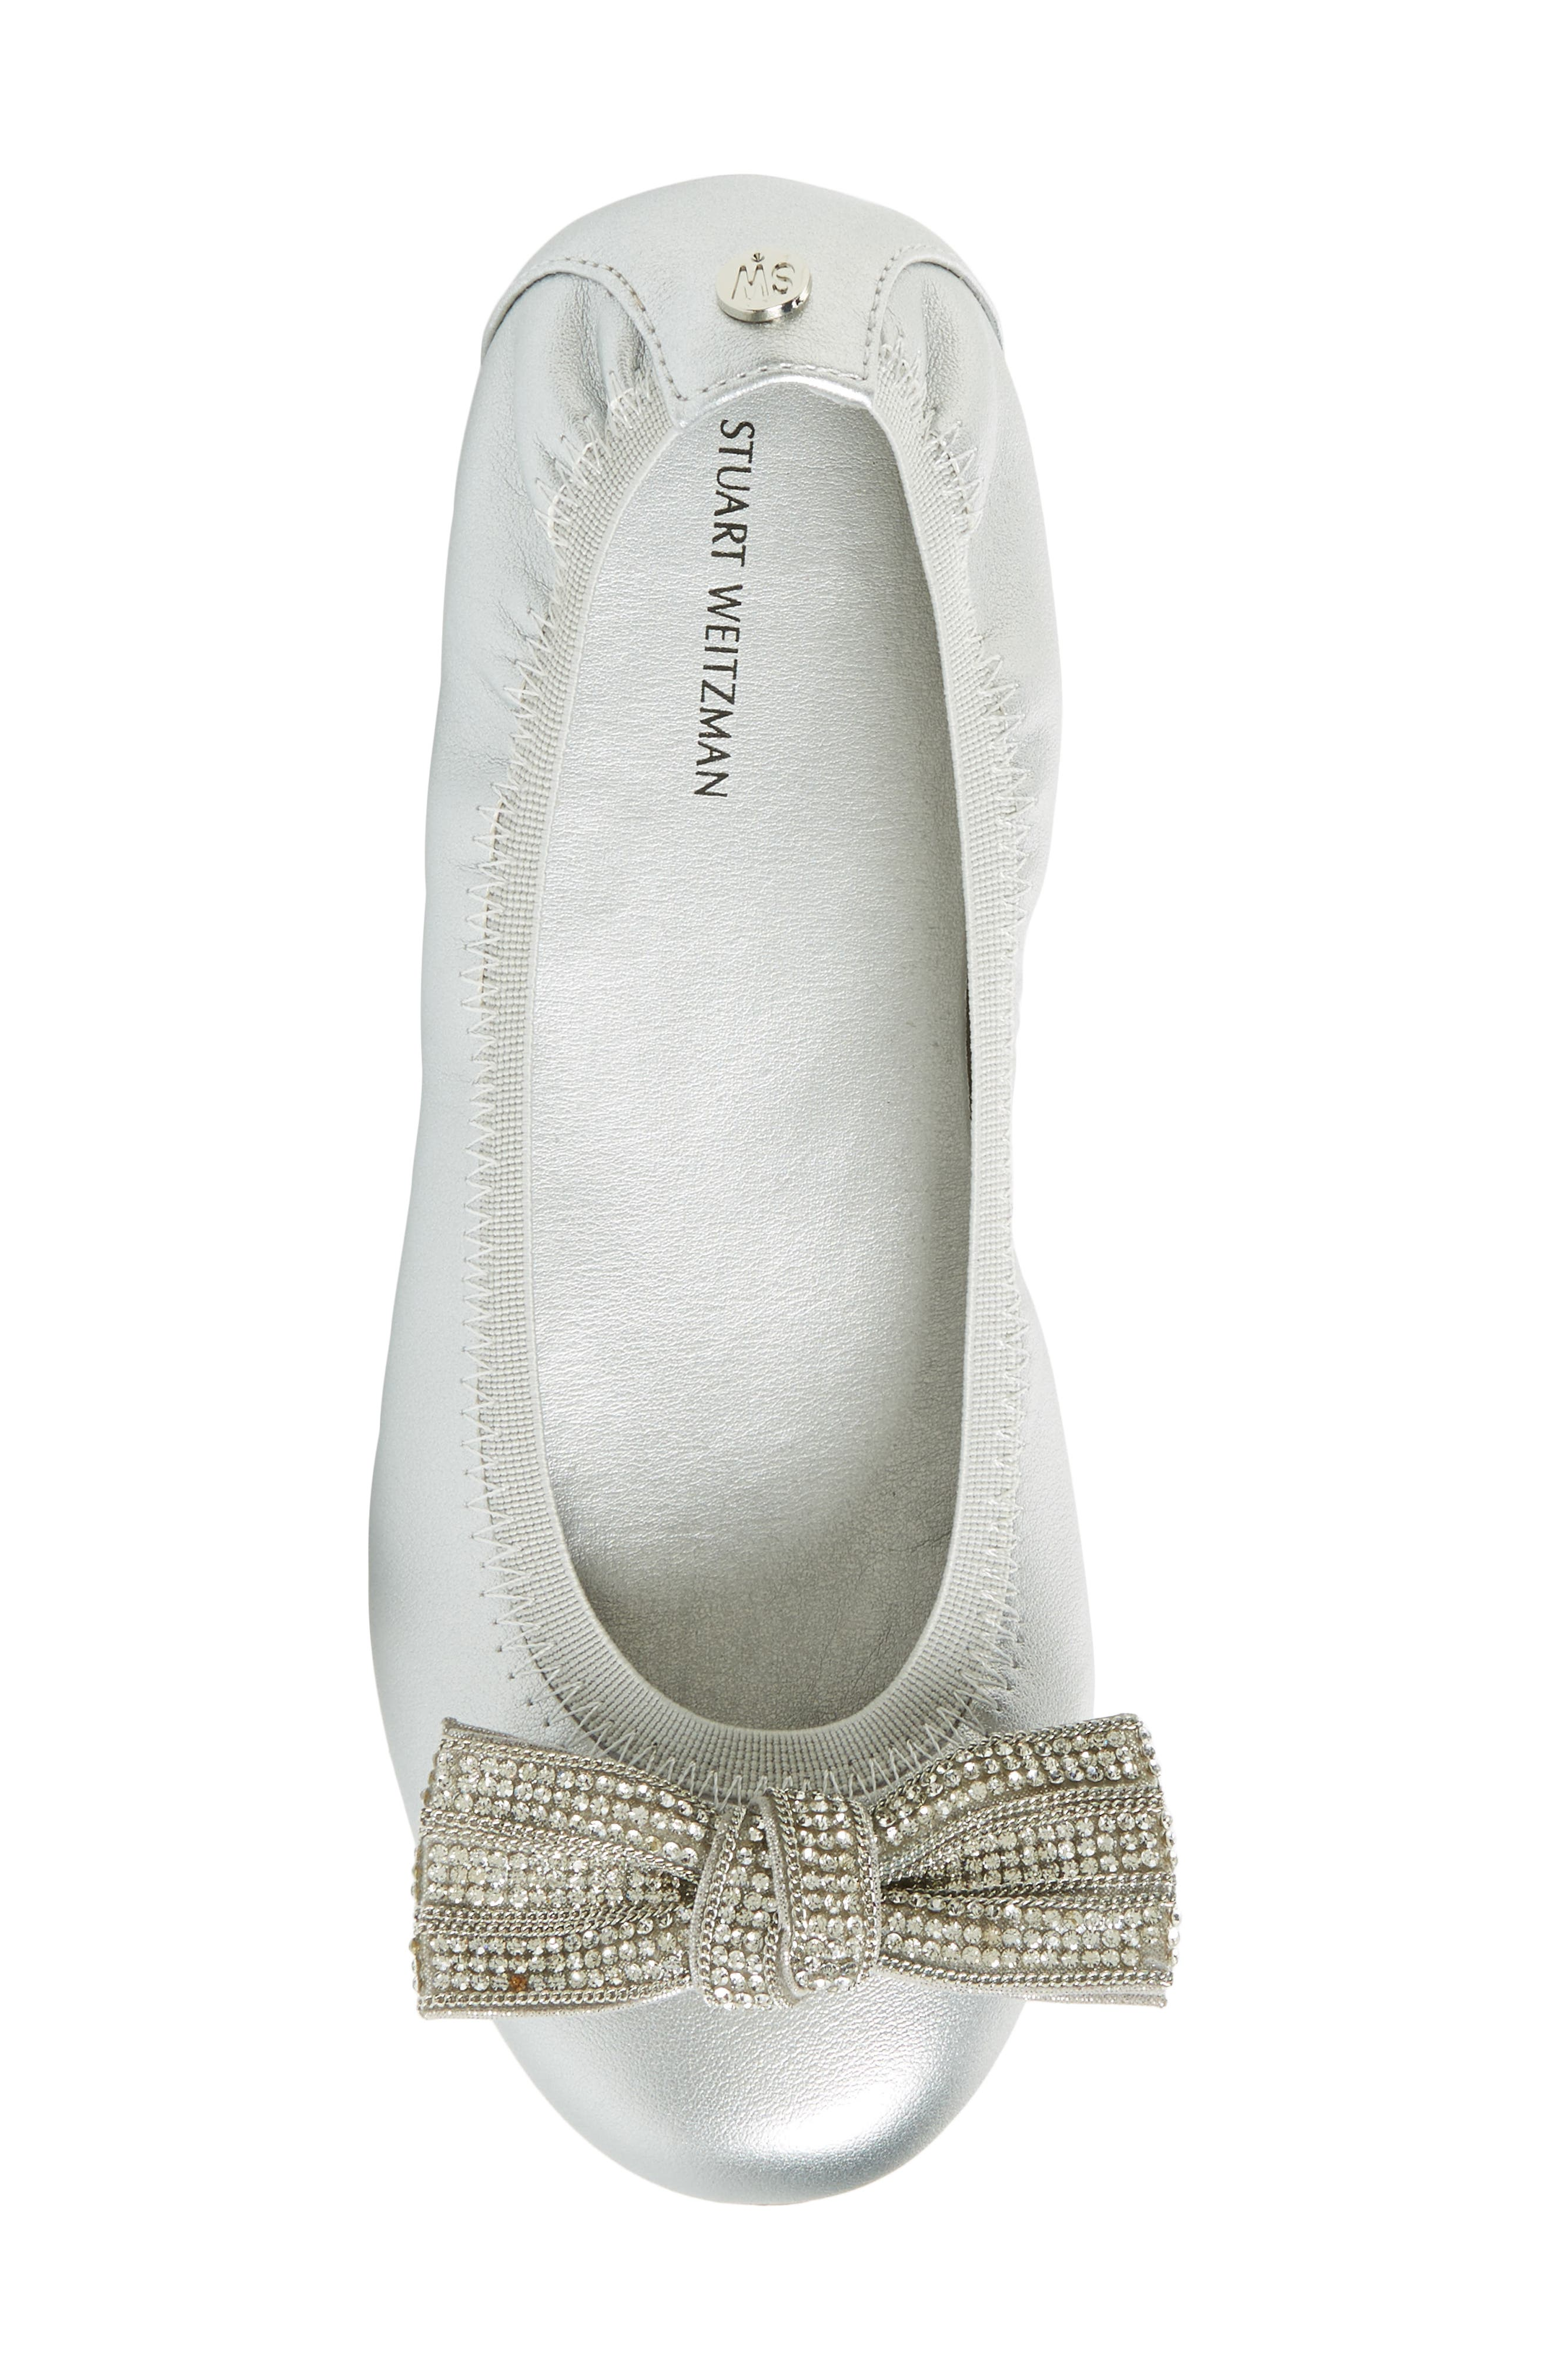 Fannie Embellished Bow Ballet Flat,                             Alternate thumbnail 5, color,                             Silver